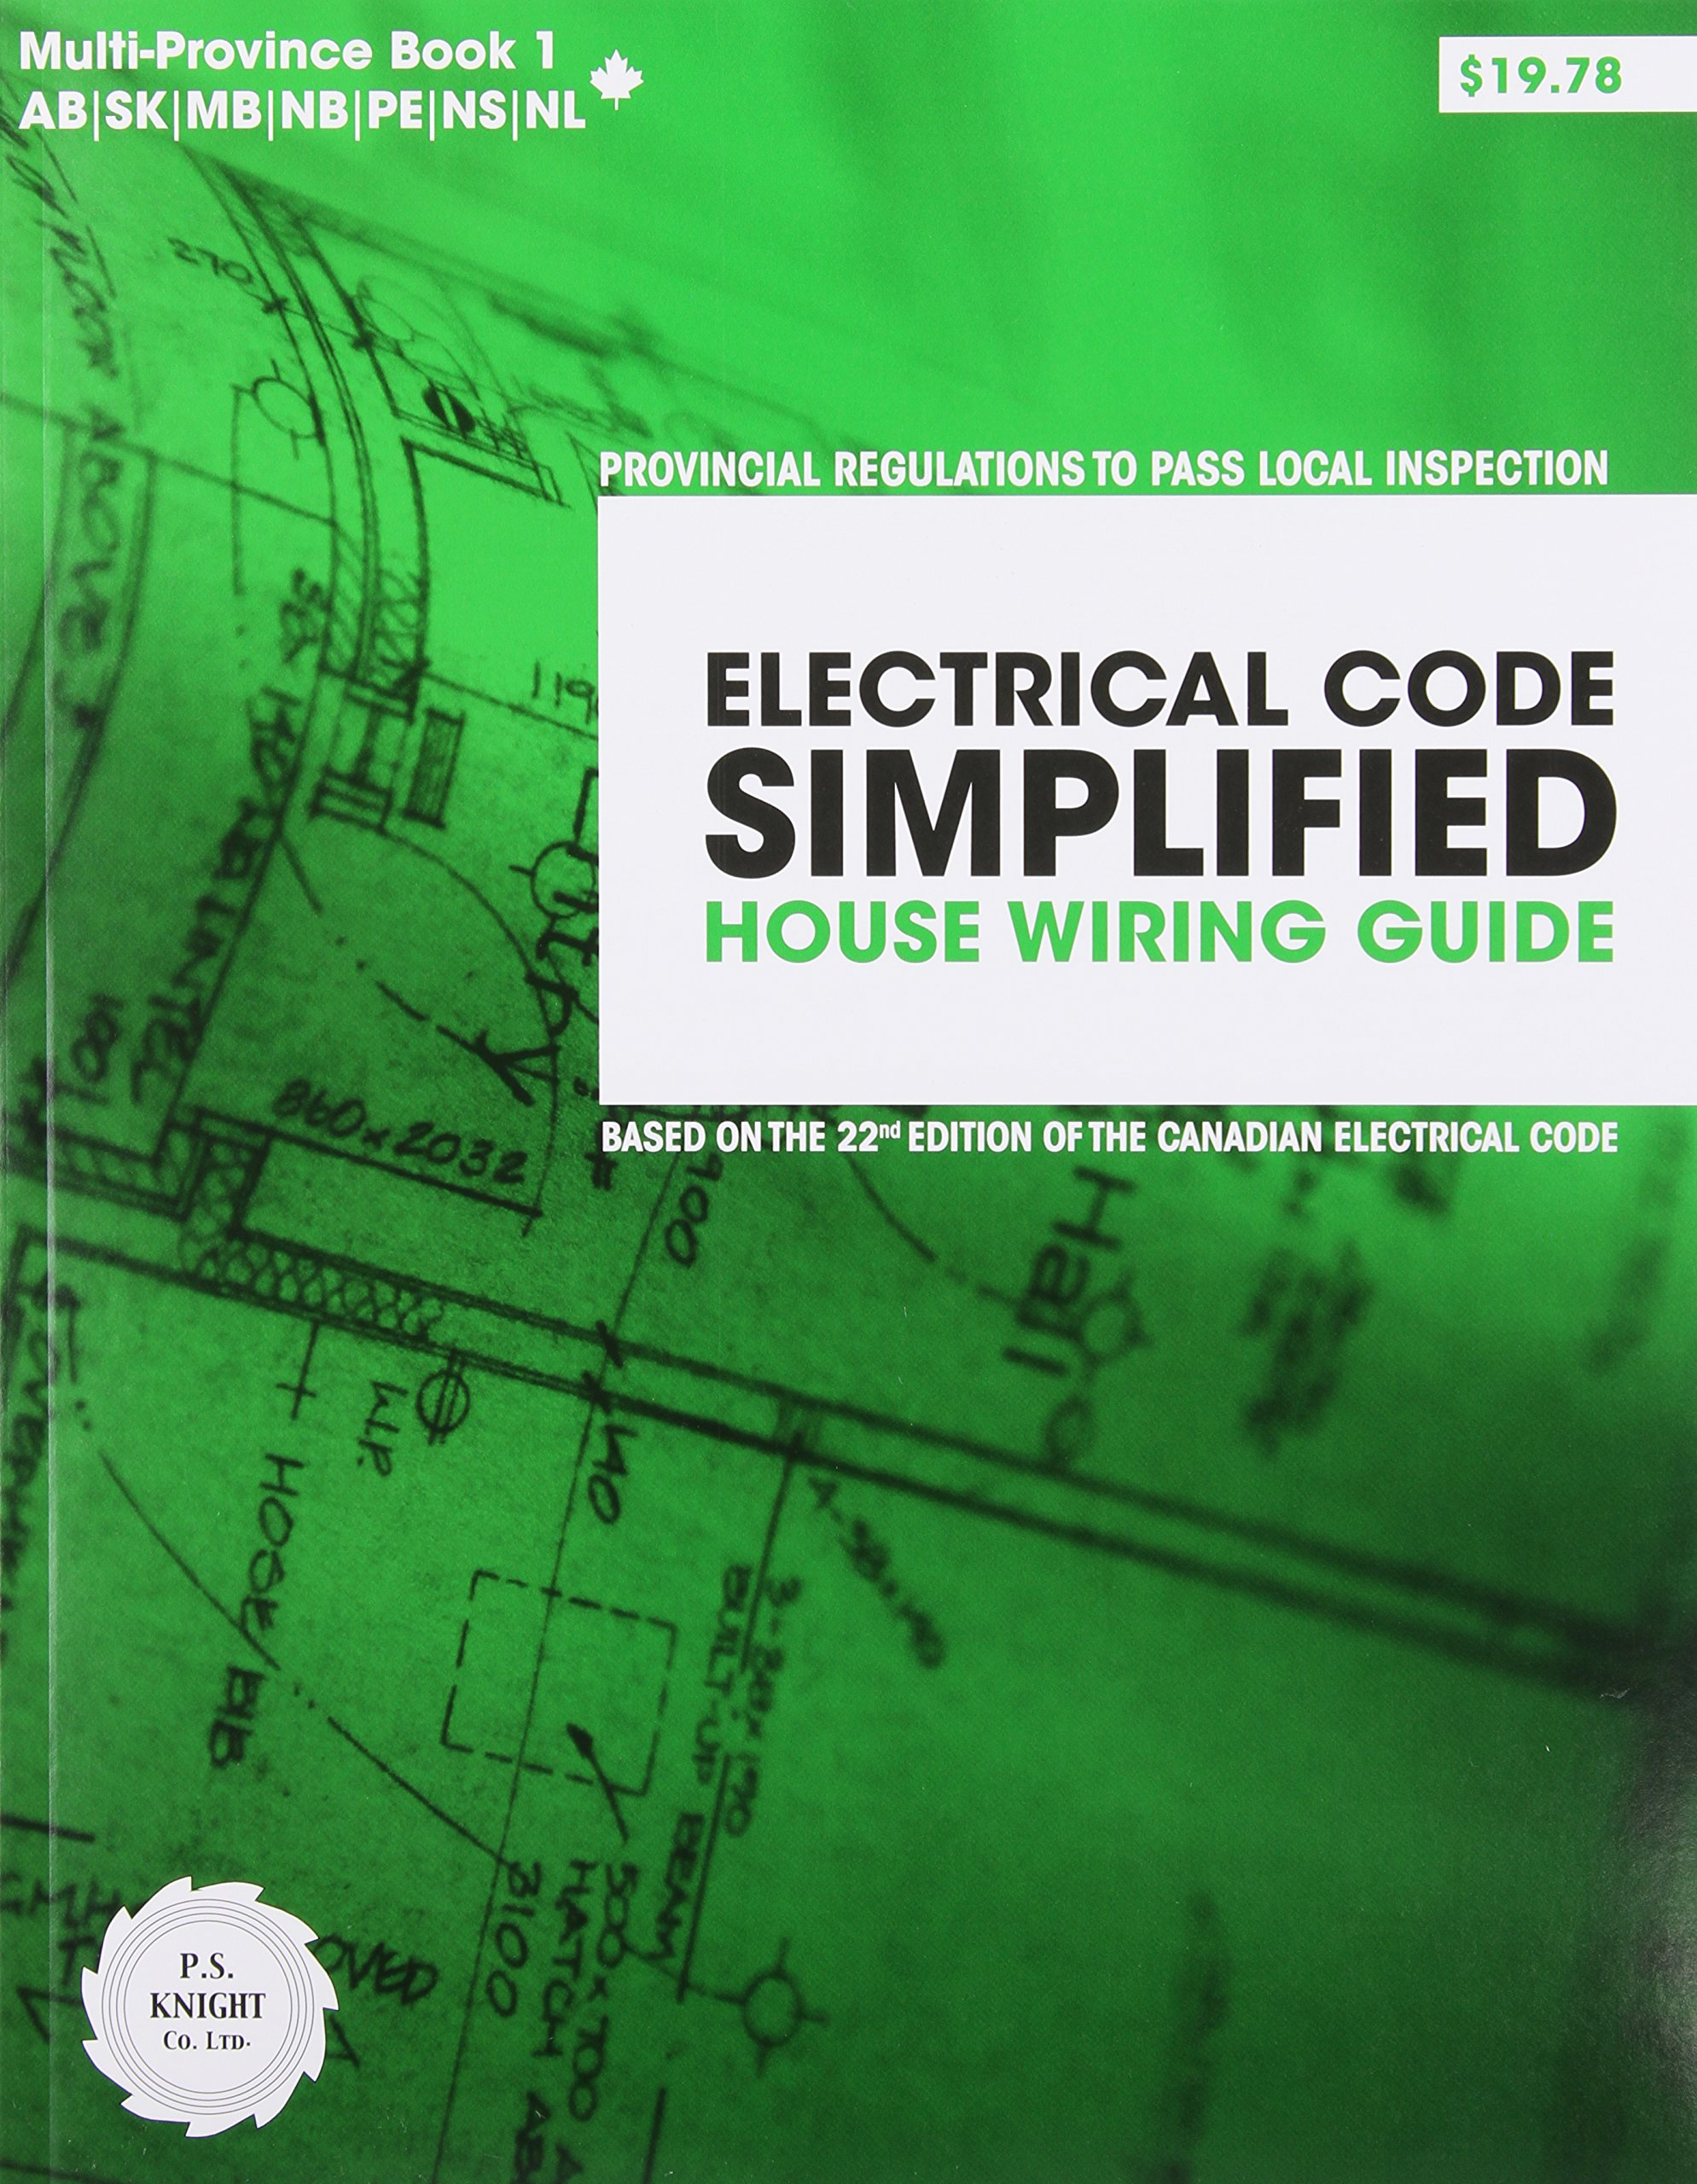 Electrical Code Simplified Multi Province Book 1 House Wiring Guide